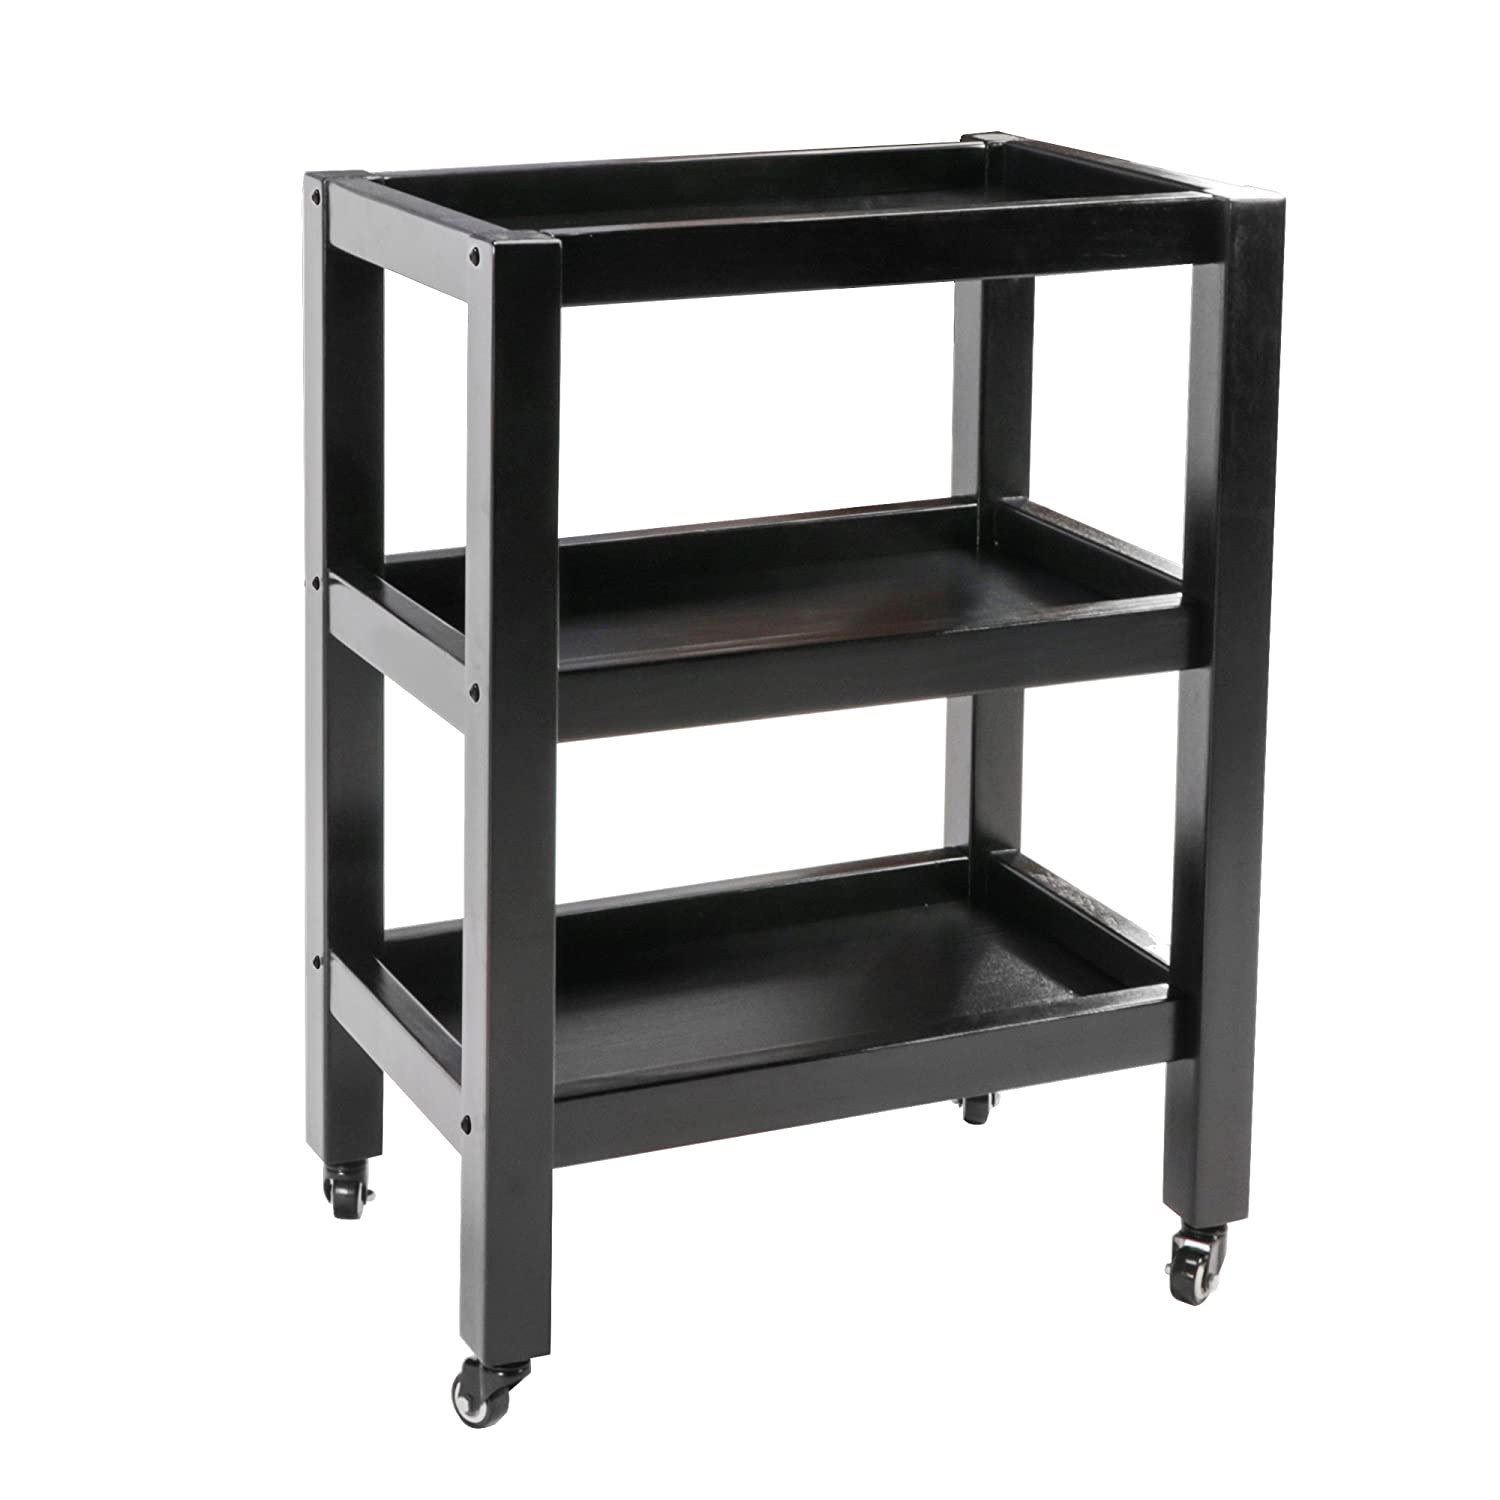 Master Massage Wooden 3-Tier Rolling Cart Large Mobile Trolley with Wheels for Salon Spa Tattoo Clinics Office Home Use, Black